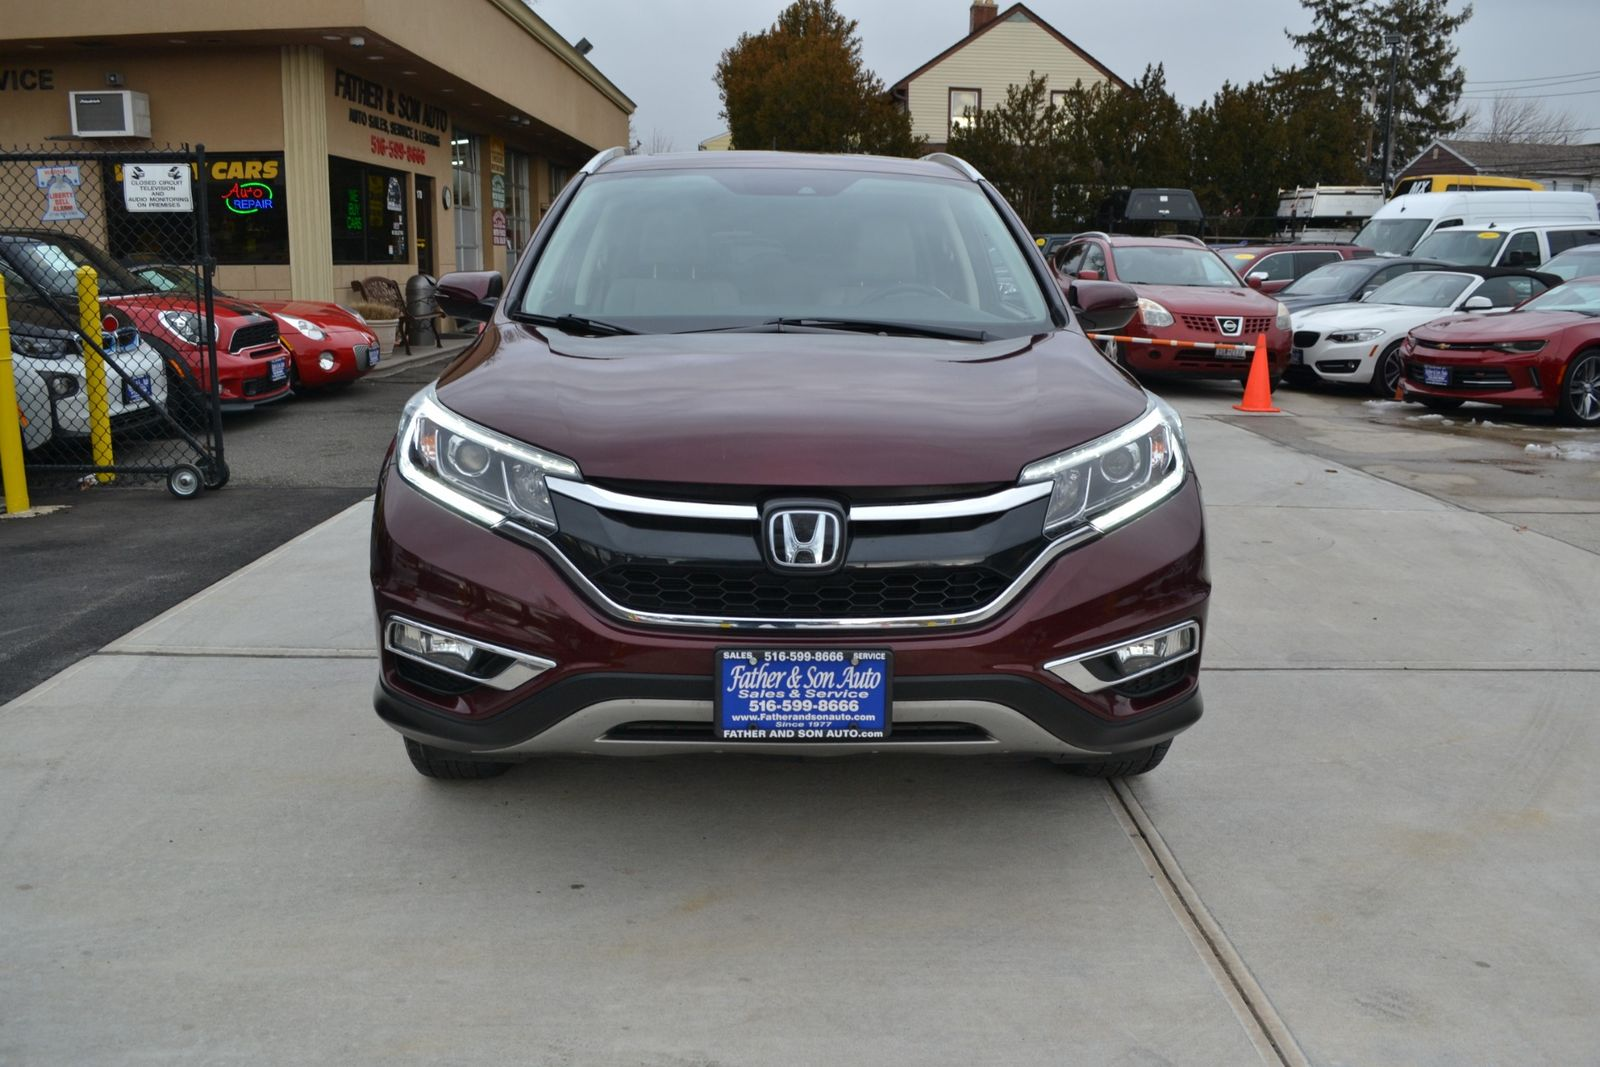 medium resolution of  2016 honda cr v touring city new father son auto corp in lynbrook